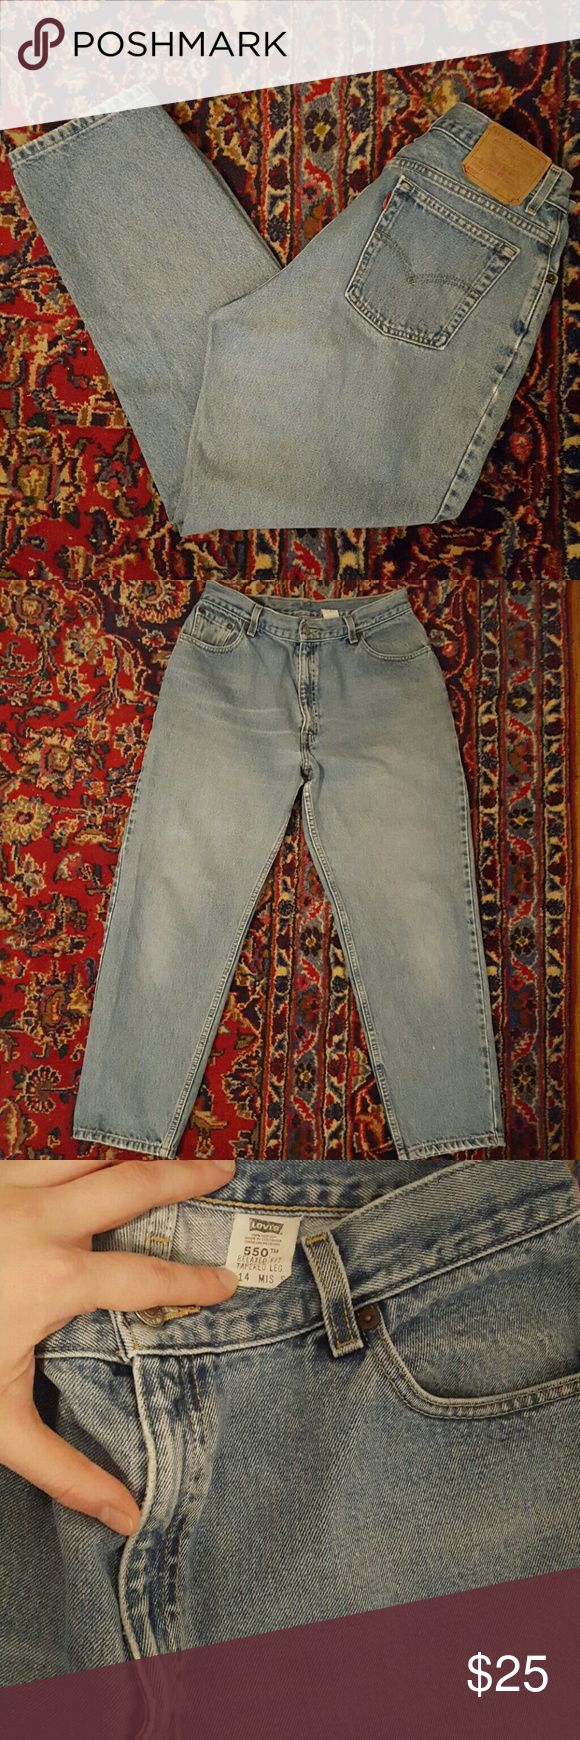 """Vintage Levi's 550 High Waisted Jeans 31"""" Vintage high waisted  Levi's with a 12"""" inseam, great condition with light distressing. Marked size 14, but more of a modern size 12. Levi's tag is loose. Levi's Jeans"""